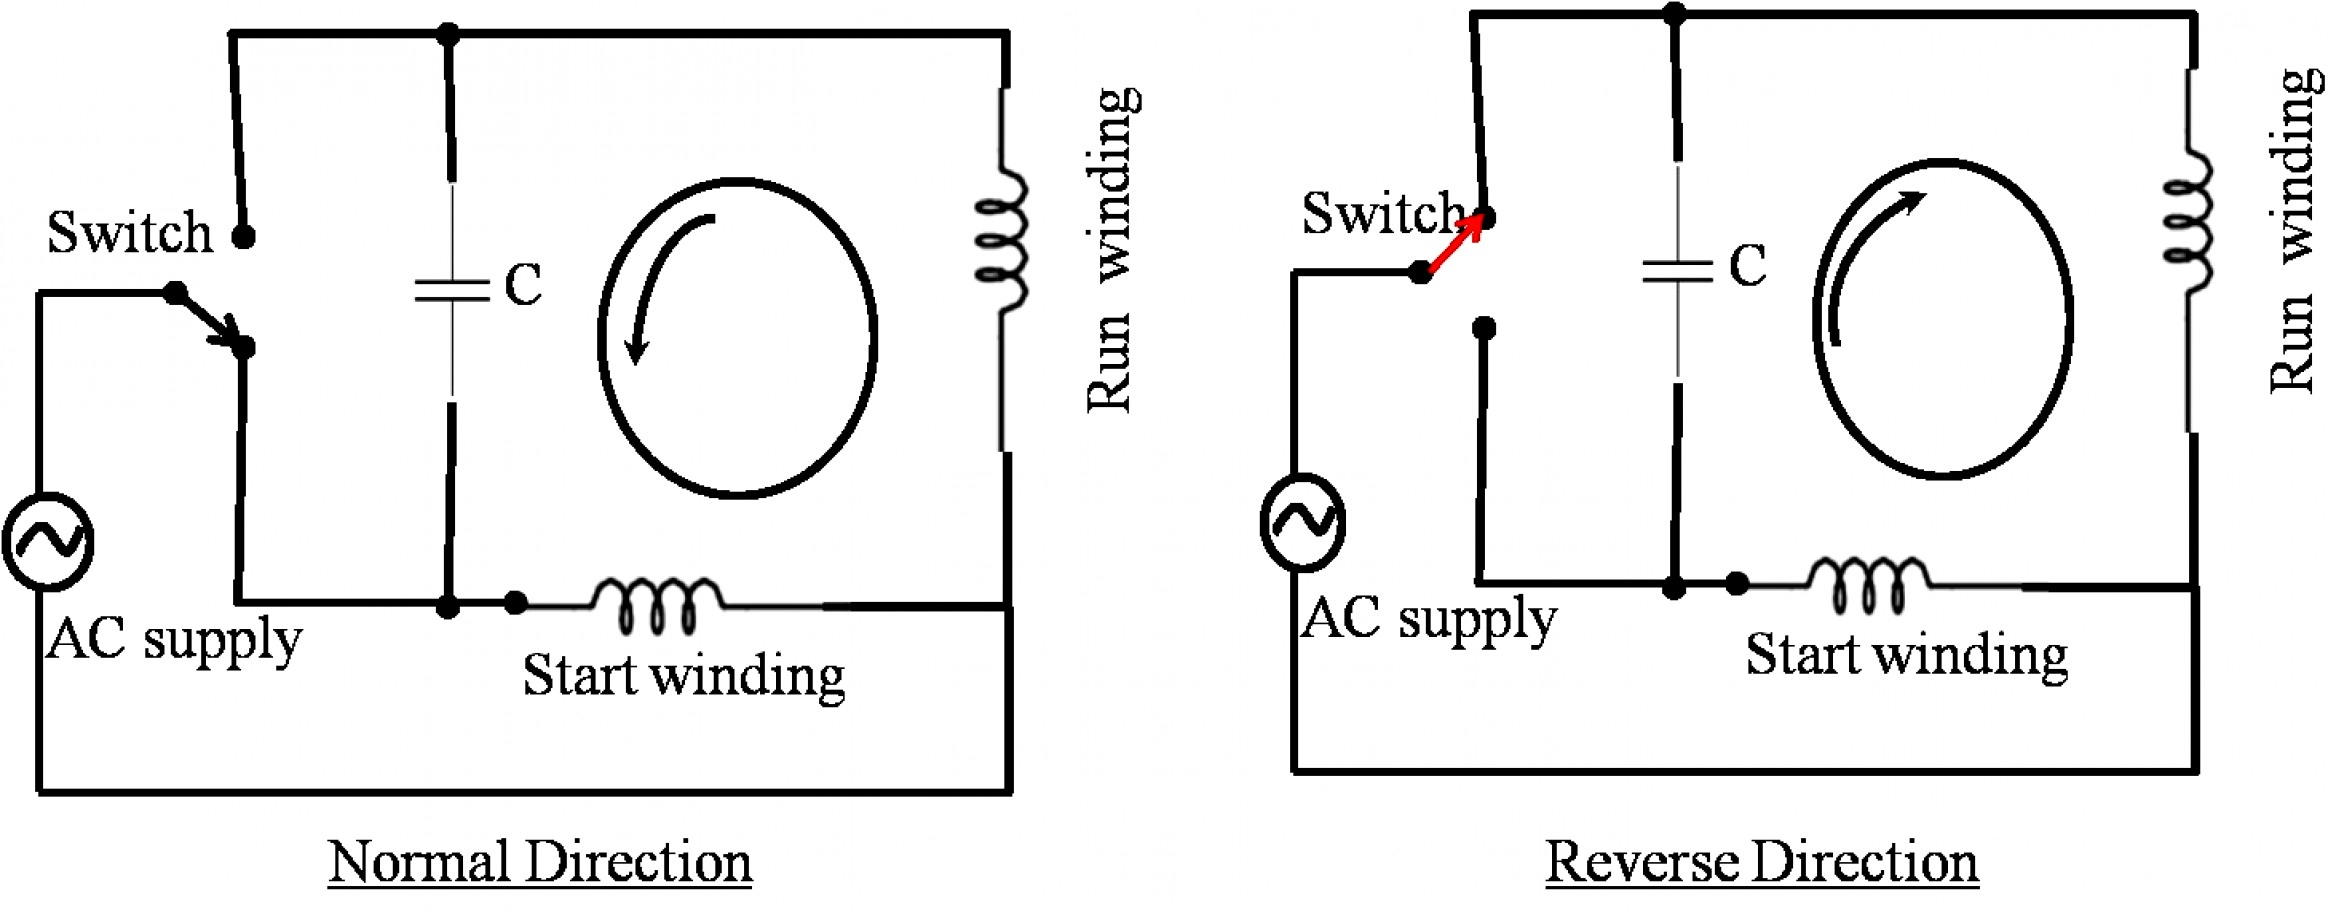 electric reversible motor switch wiring